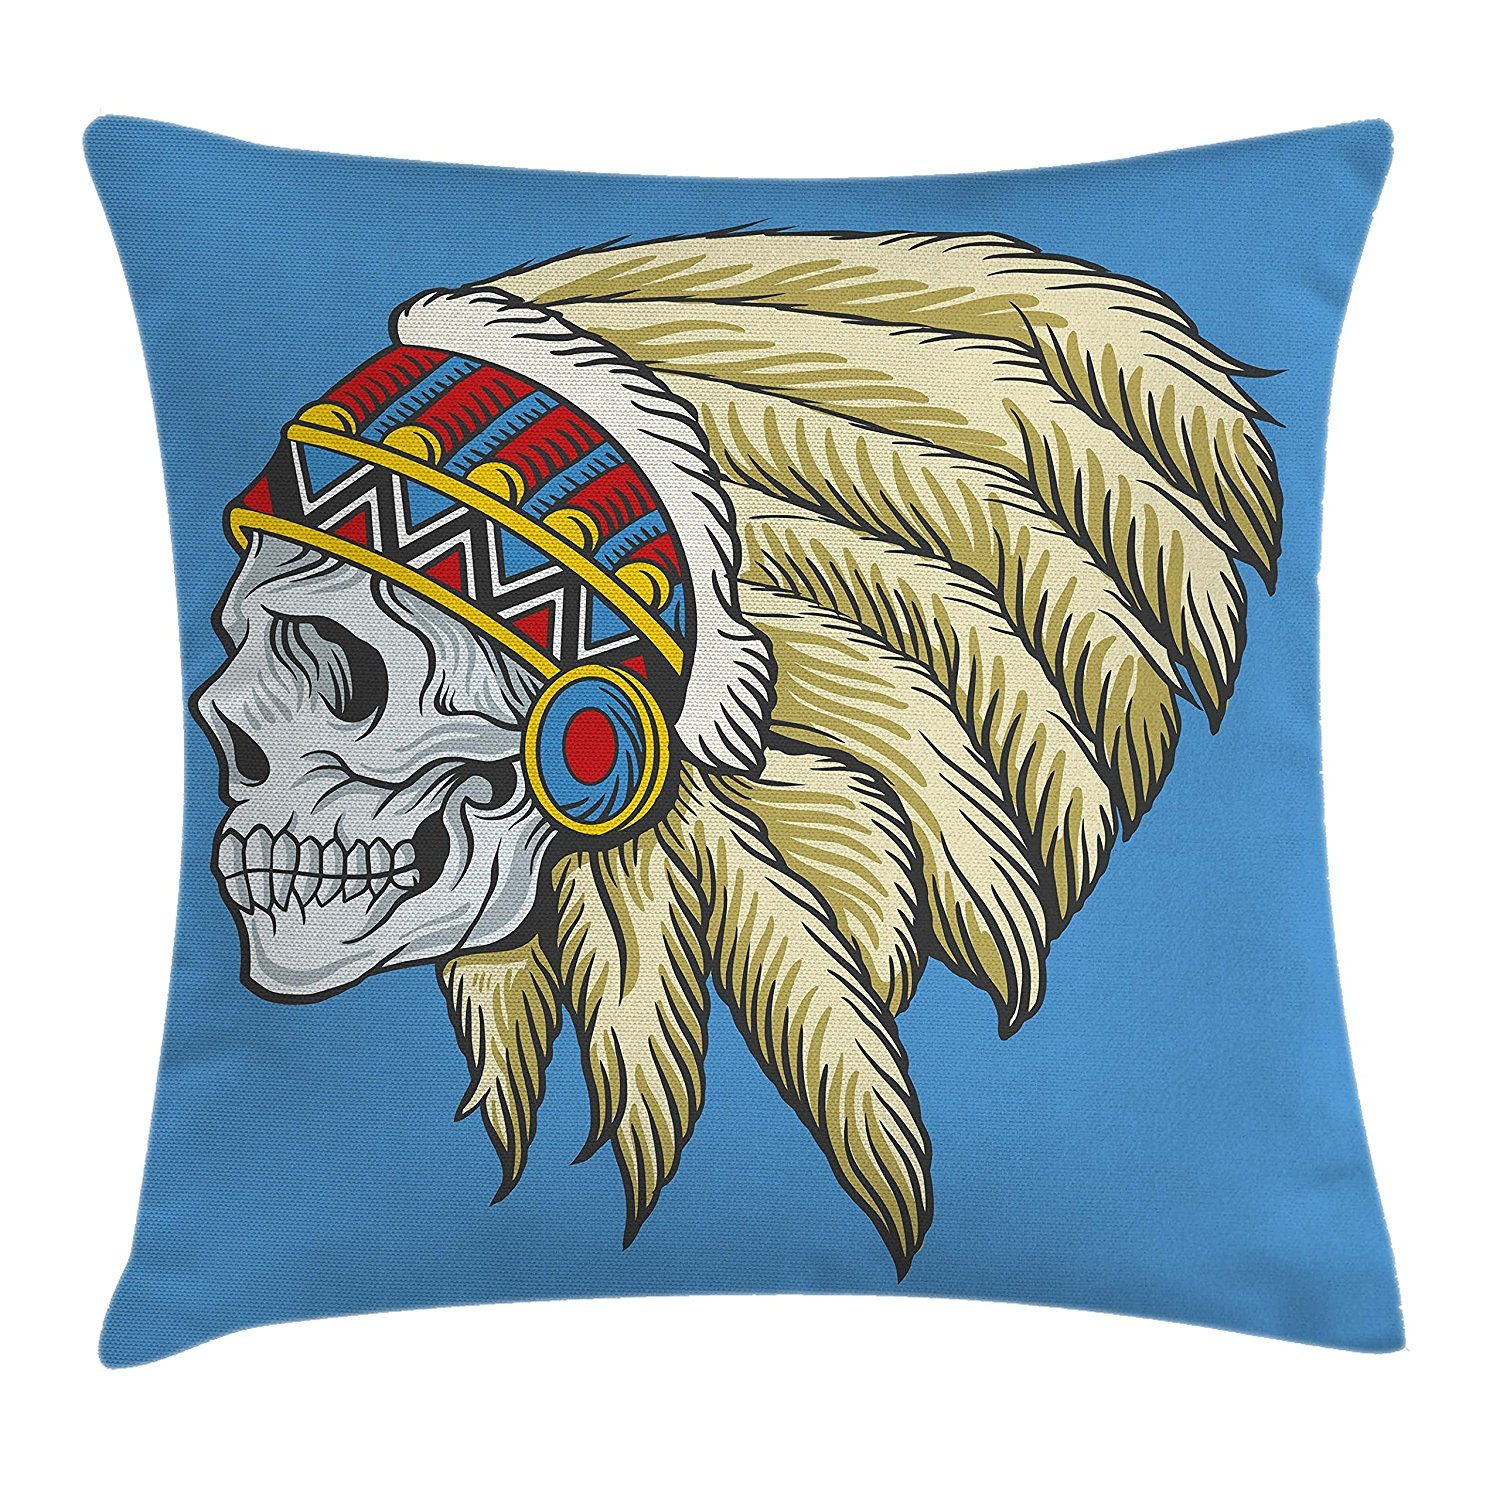 Tribal Throw Pillow Cushion Cover, Native American Dead Skull with Feathers Tattoo Folk Pattern, Decorative Square Accent Pillow Case, 18 X 18 inches, Violet Blue Cream Pearl cyg5fw7r